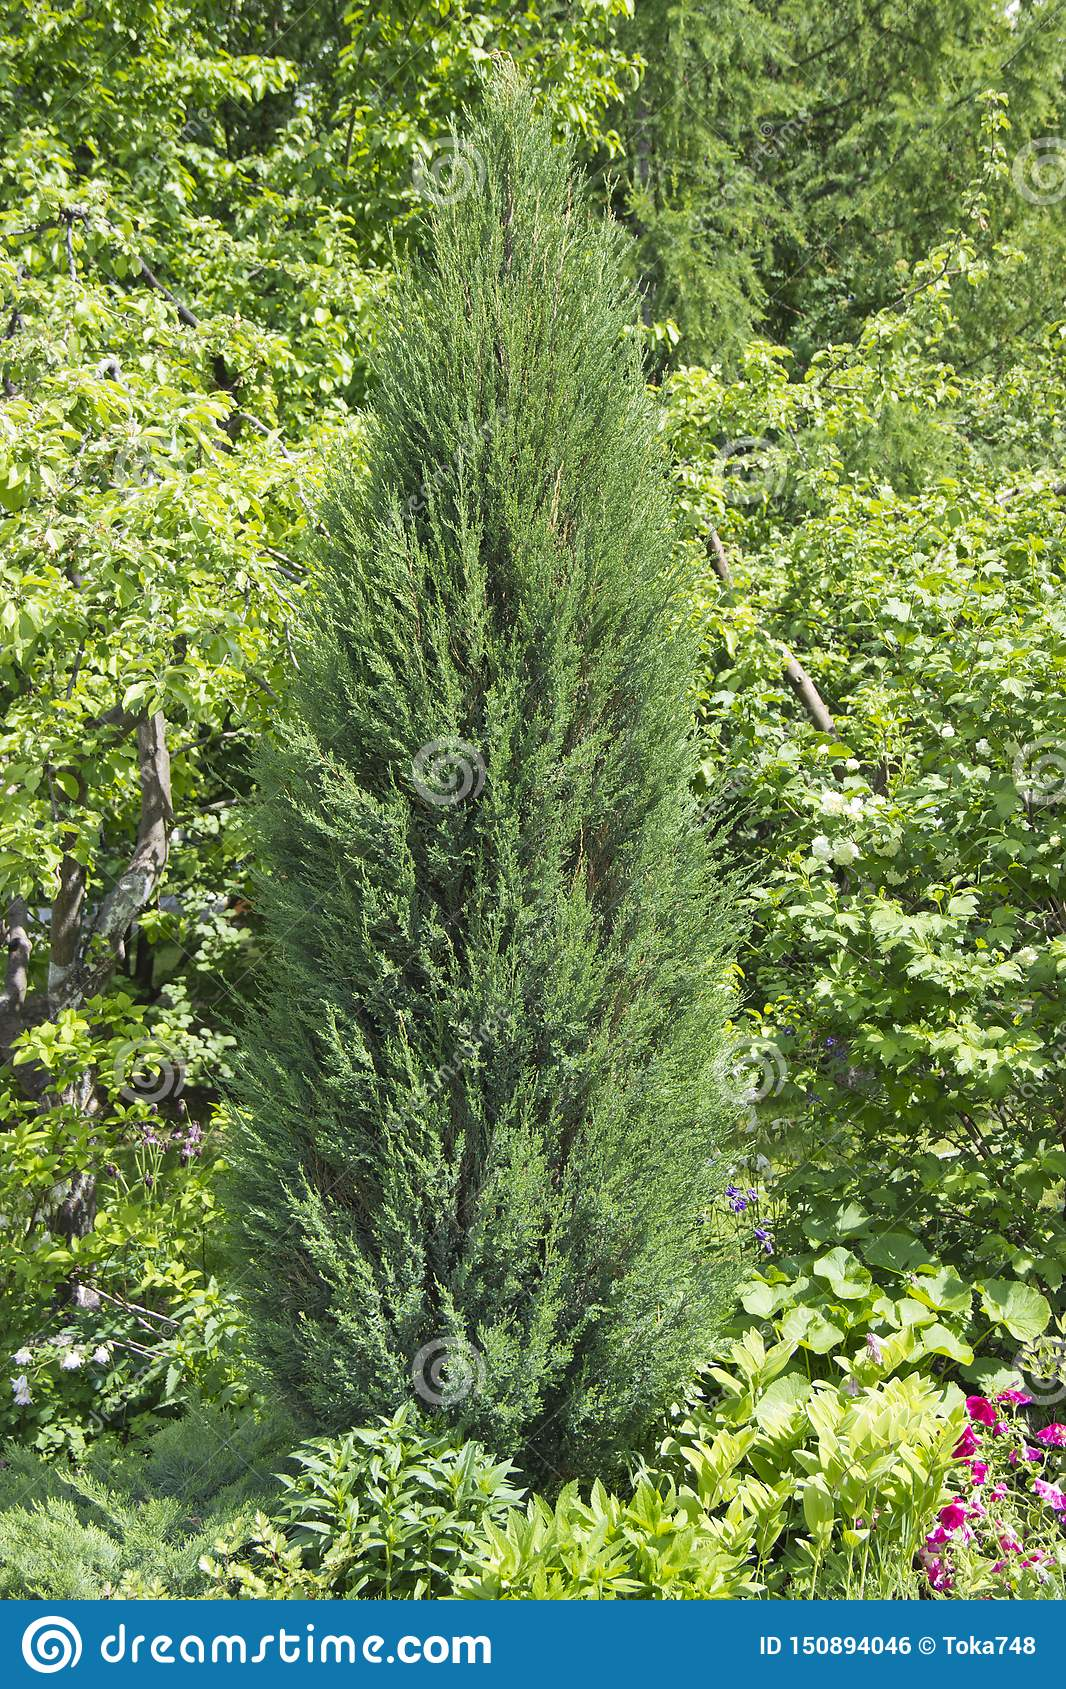 Cupressus is a genus of evergreen trees and shrubs of the Cypress family with pyramidal or spreading crown